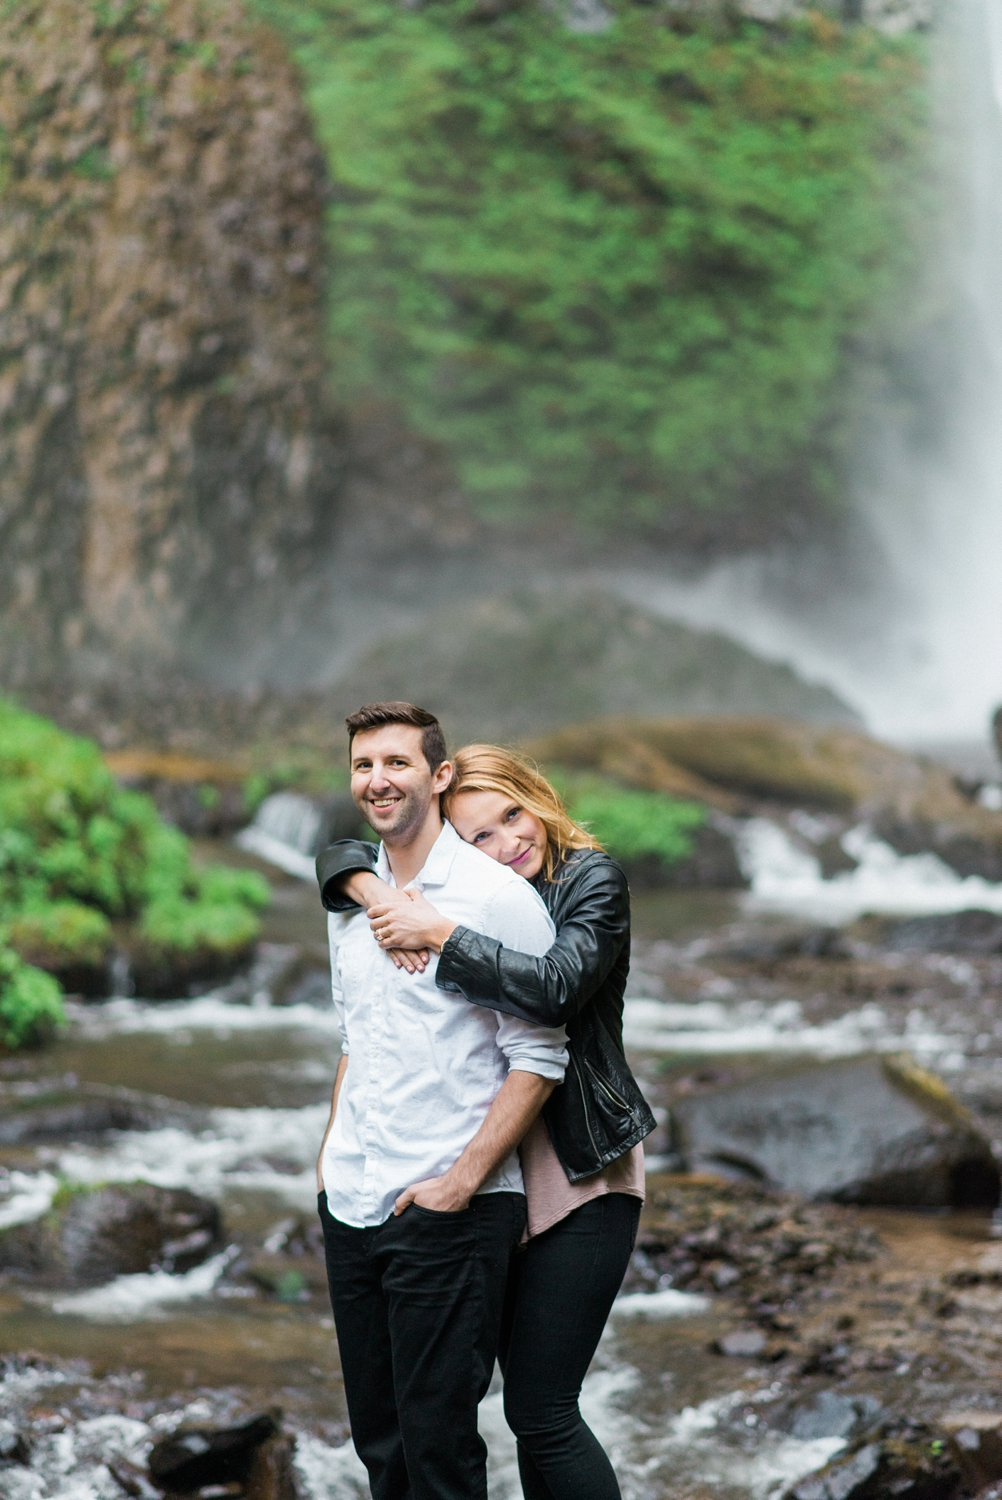 portland-engagement-columbia-river-gorge-oneonta-latourell-waterfall-shelley-marie-photo-227_cr.jpg